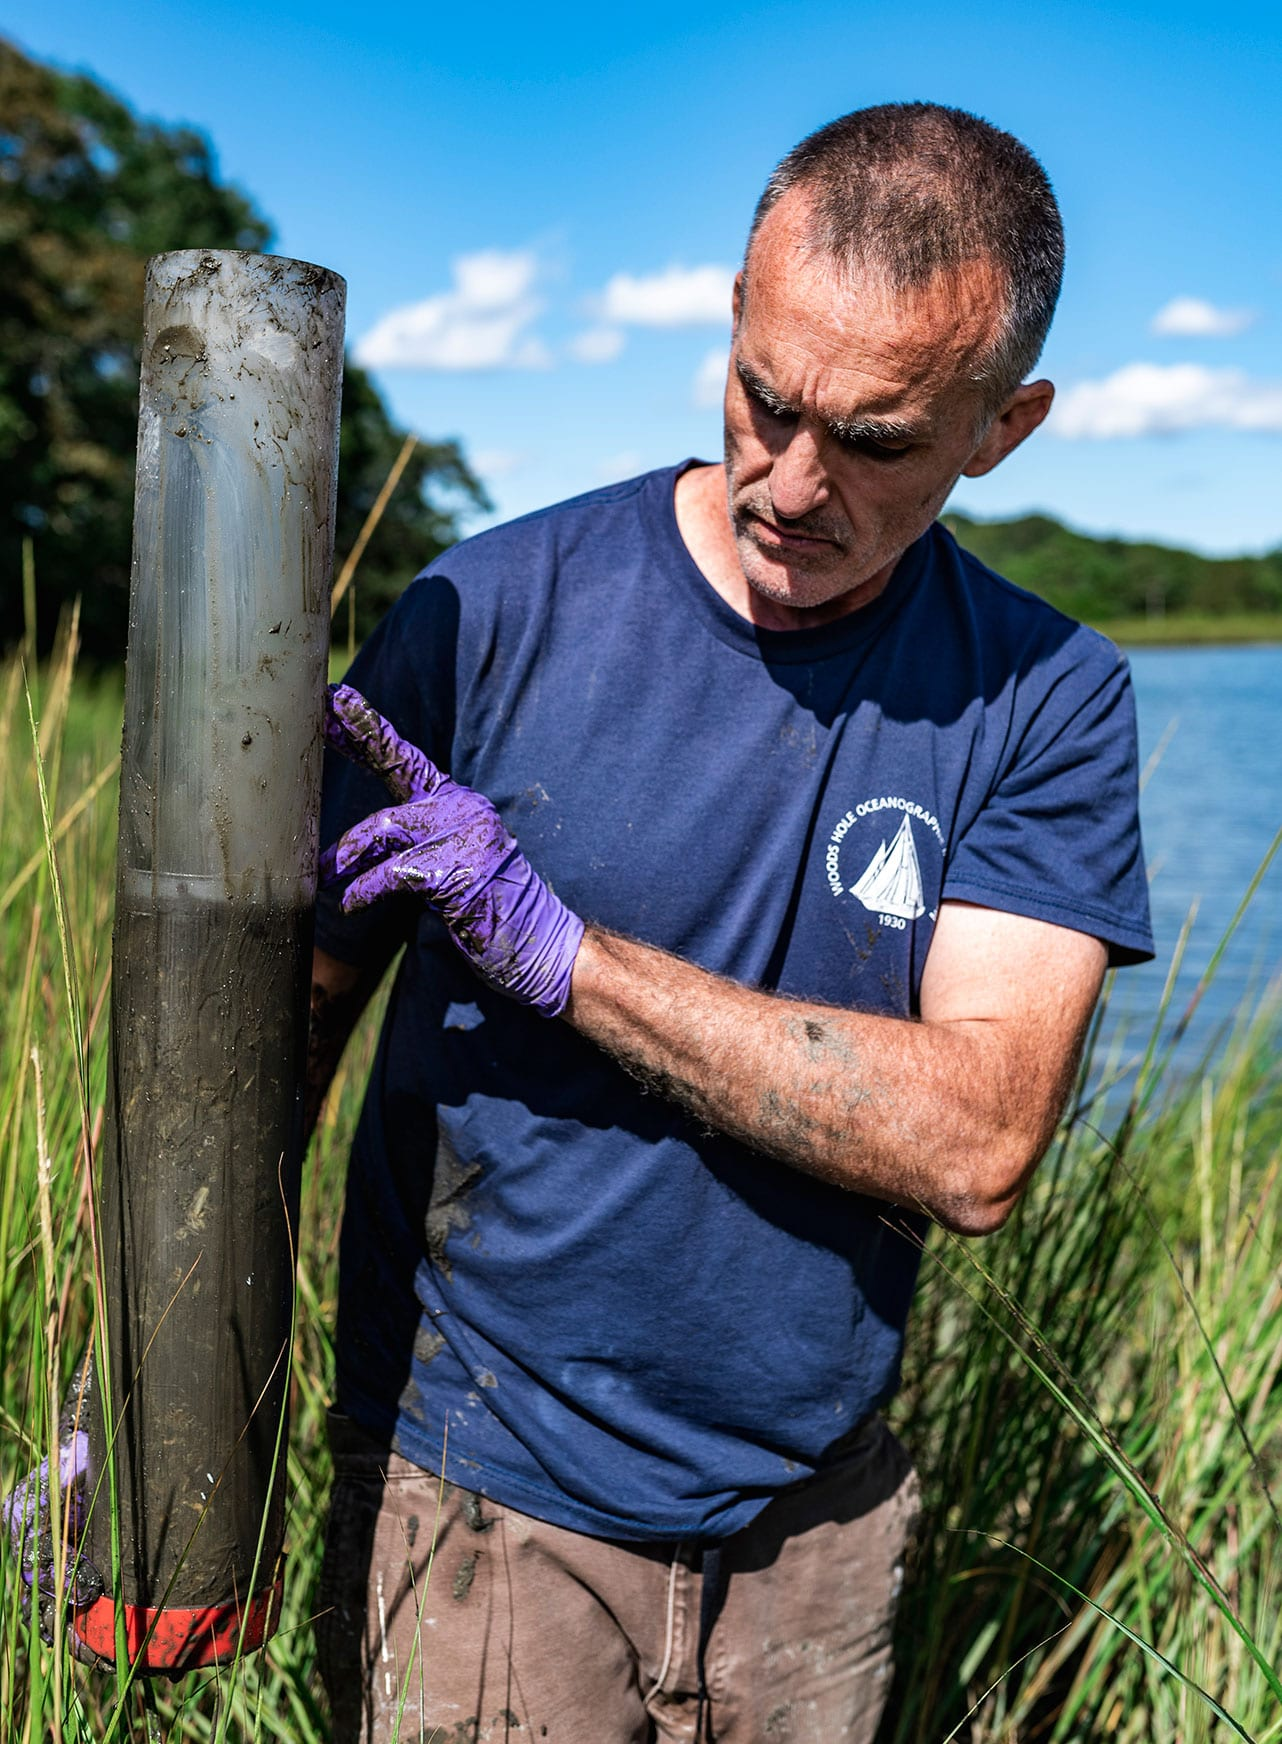 WHOI marine geochemist, Christopher Reddy, holds up a PVC pipe core of the sediment, something he calls a natural tape recorder for what happened to the land throughout the years. This includes the West Falmouth Oil Spill, which can be detected six inches deep in soil. (Photo by Daniel Hentz, Woods Hole Oceanographic Institution)